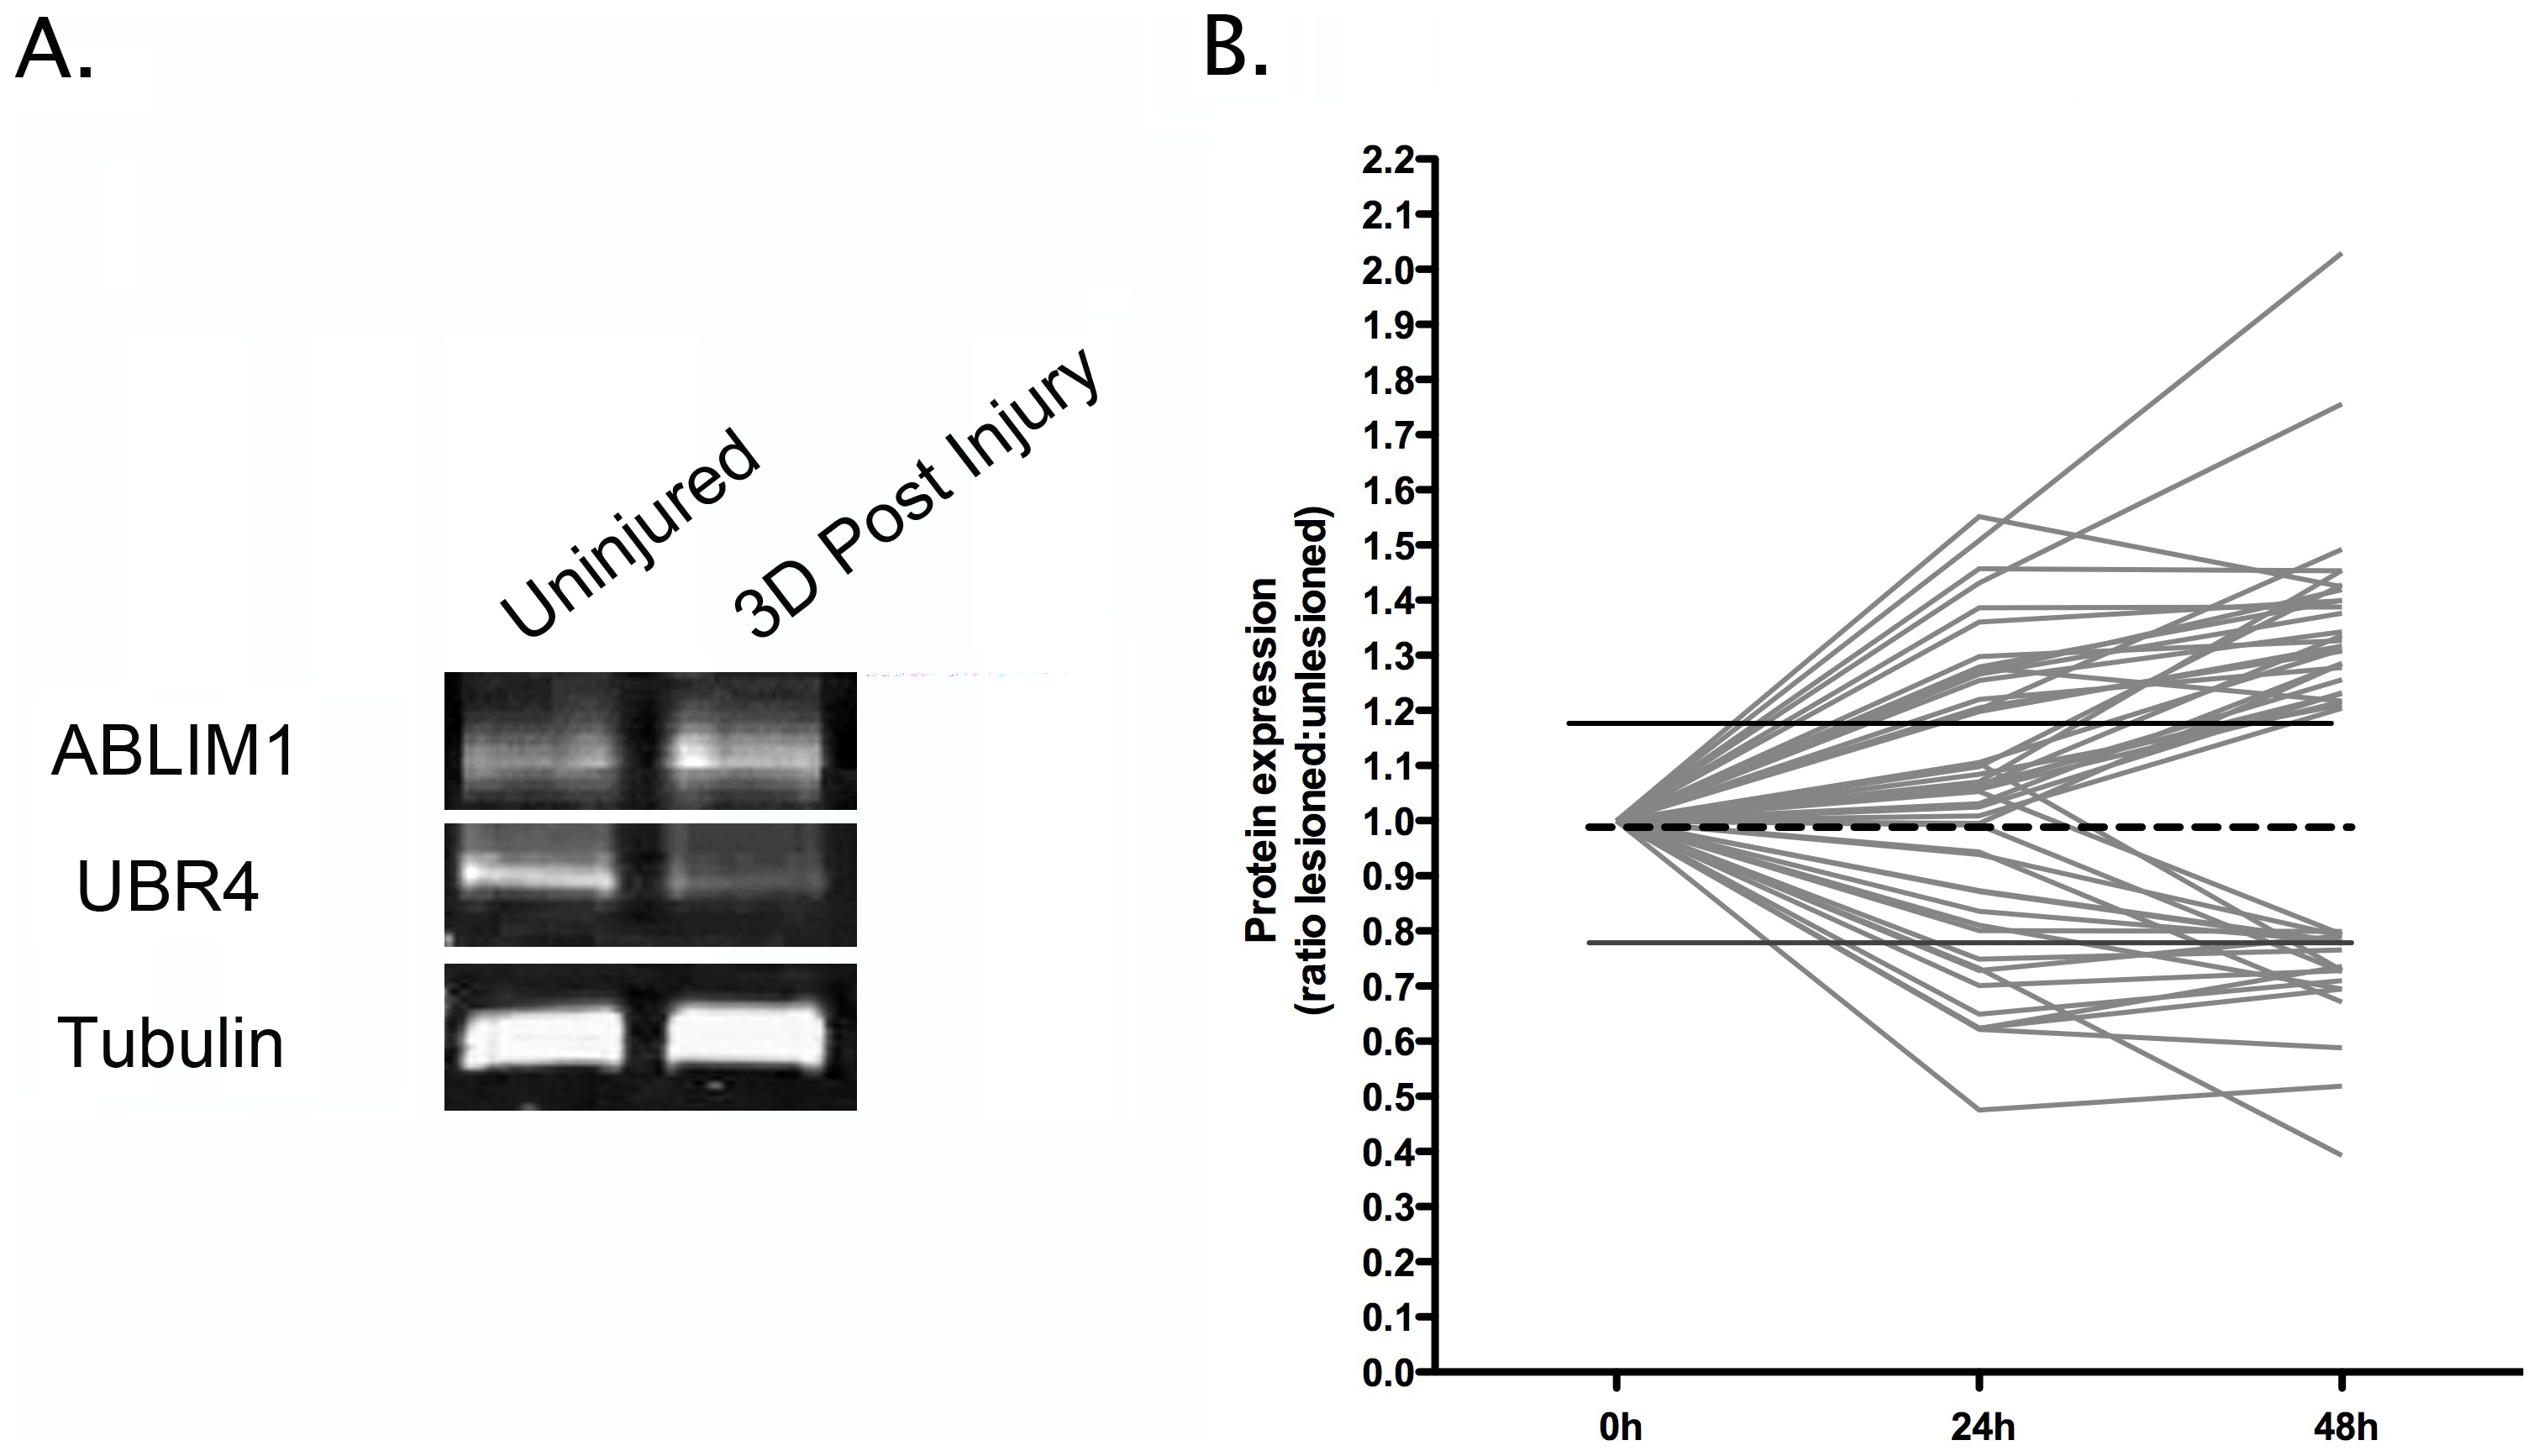 Temporal expression profiling identifies molecular changes occurring in synapse-enriched fractions from the striatum undergoing degeneration.